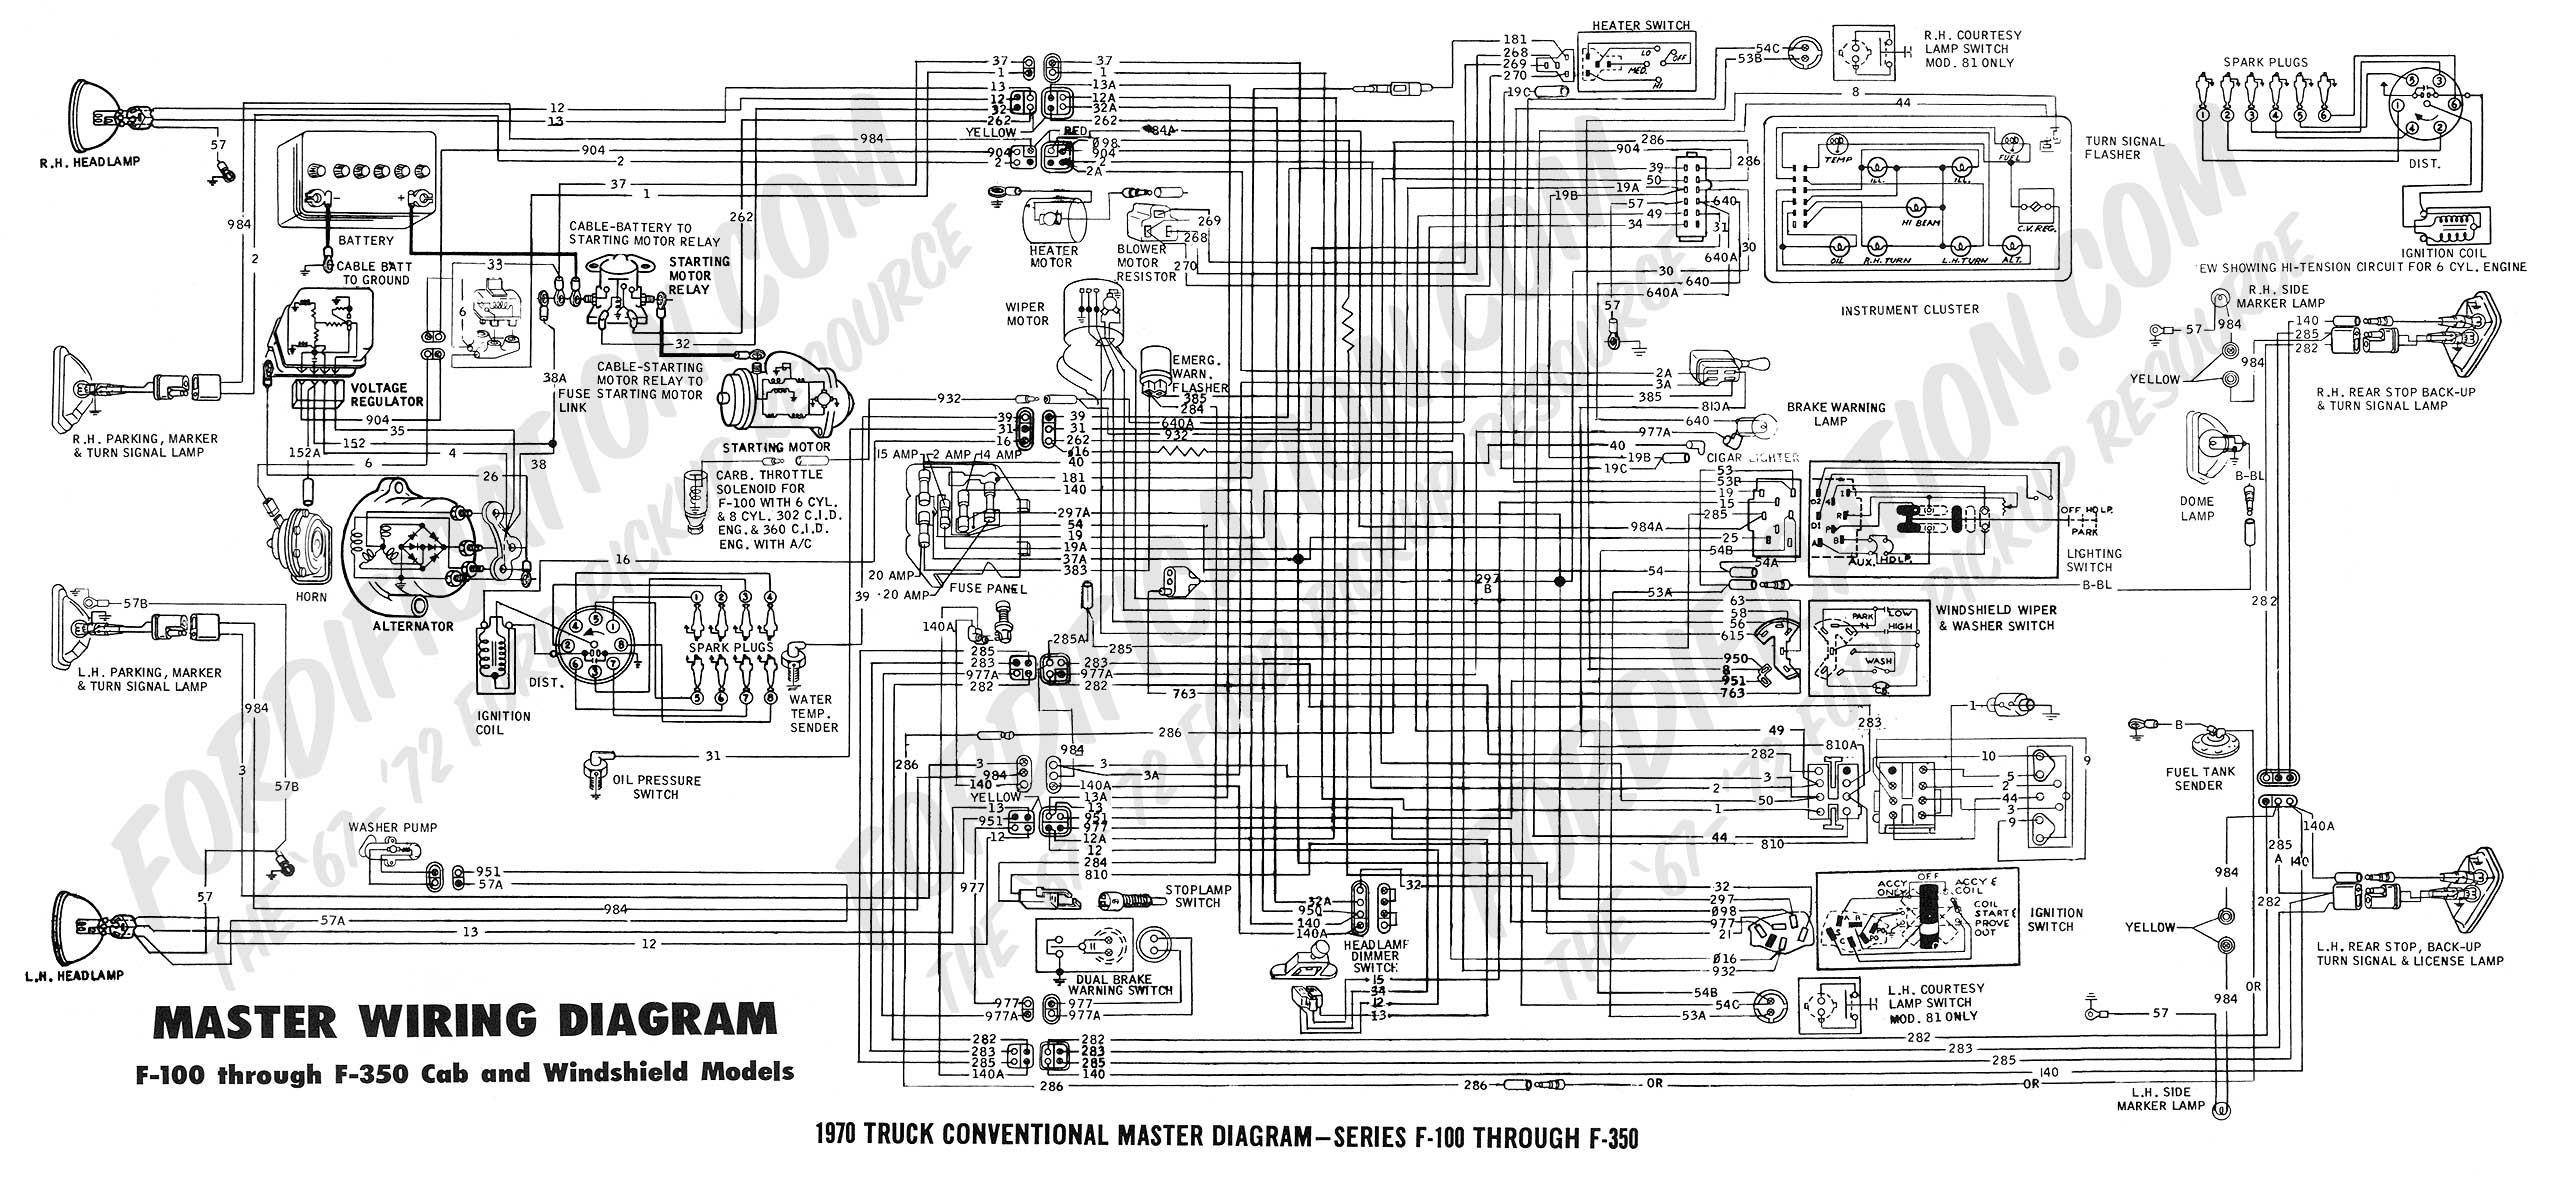 wiring diagram 70_master wiring diagram for 1970 ford mustang readingrat net 94 Ford Mustang Coupe Fuse Box at gsmx.co